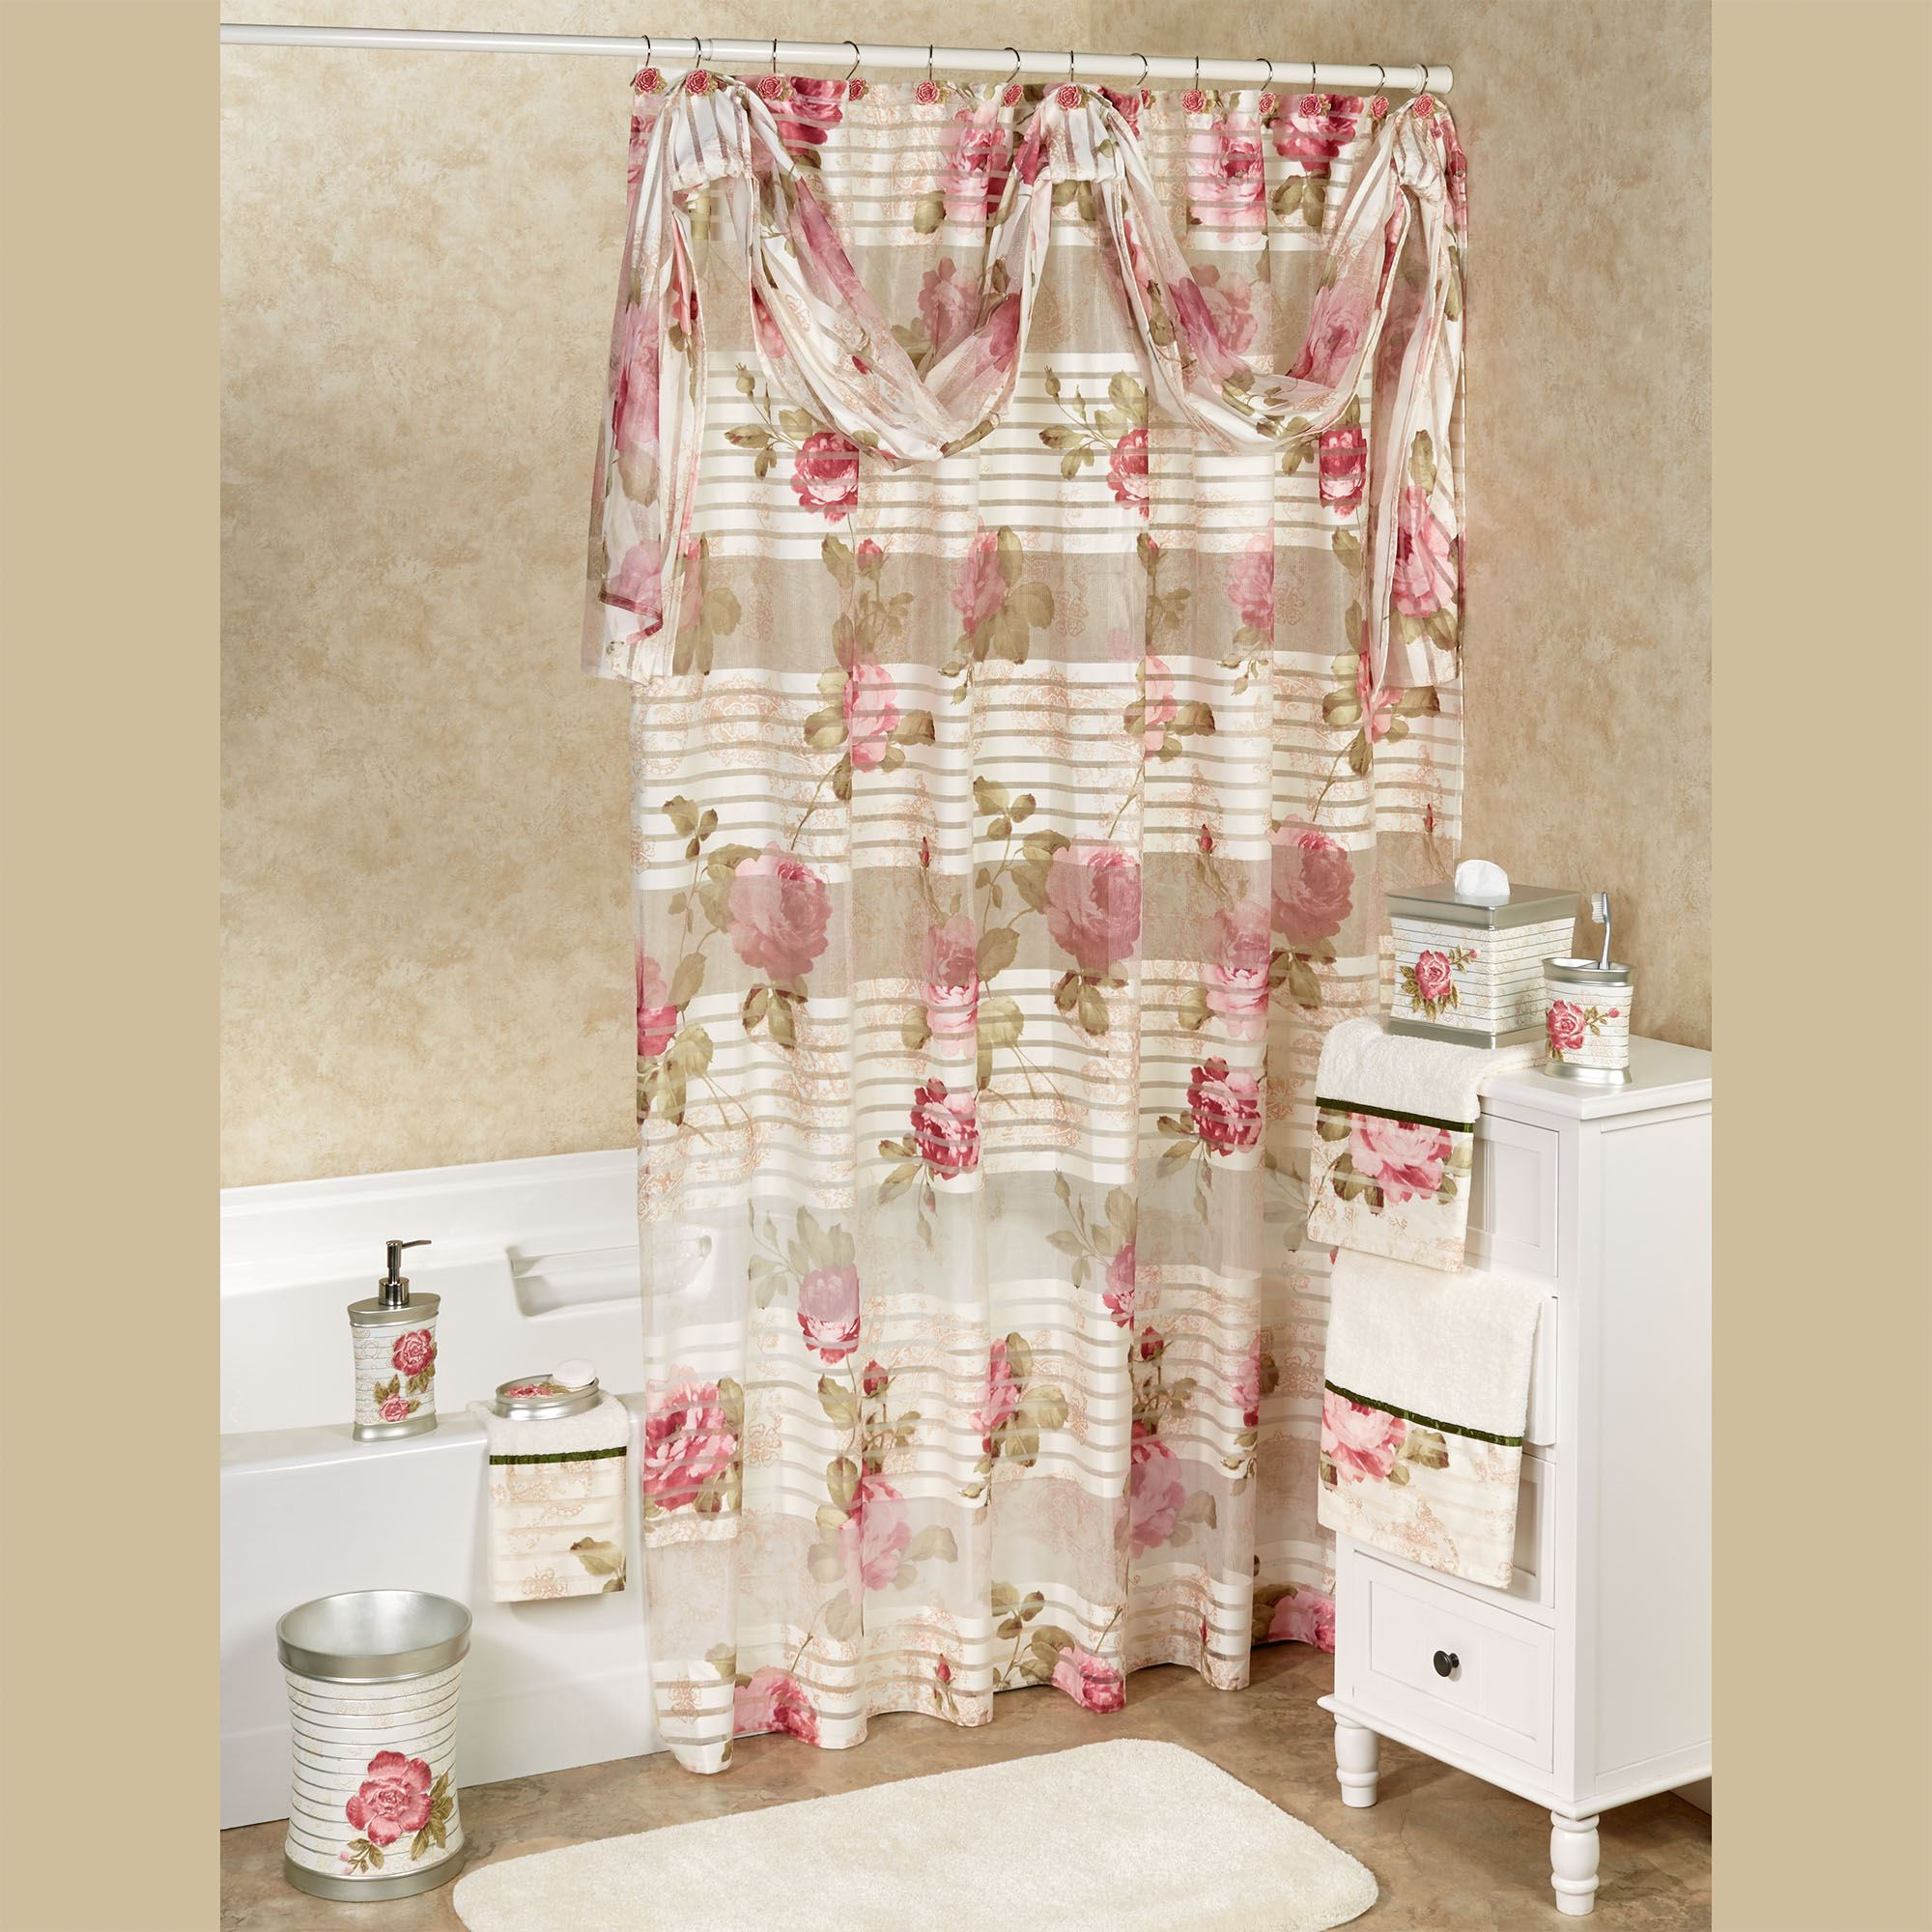 Spring Rose Shower Curtain Light Cream 72 X Touch To Zoom